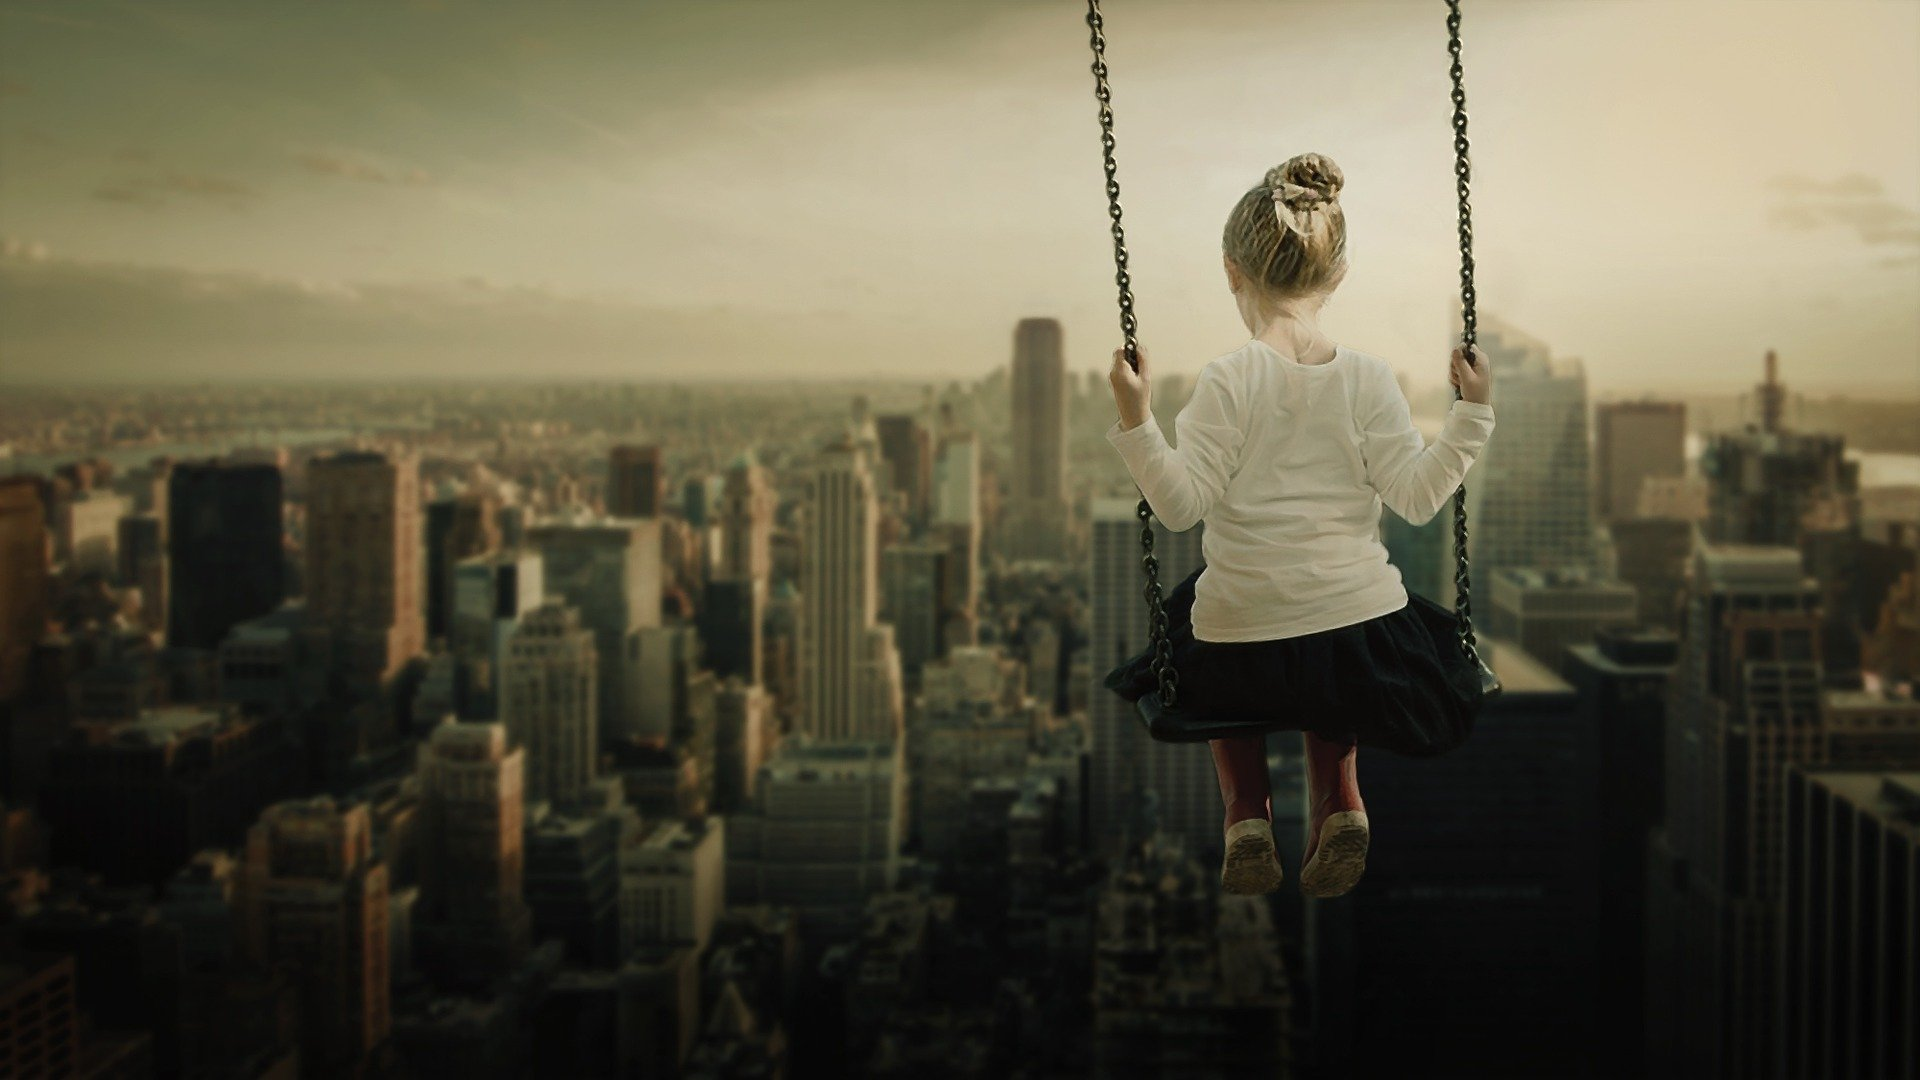 girl-sitting-on-swing-overlooking-city-dream.jpg